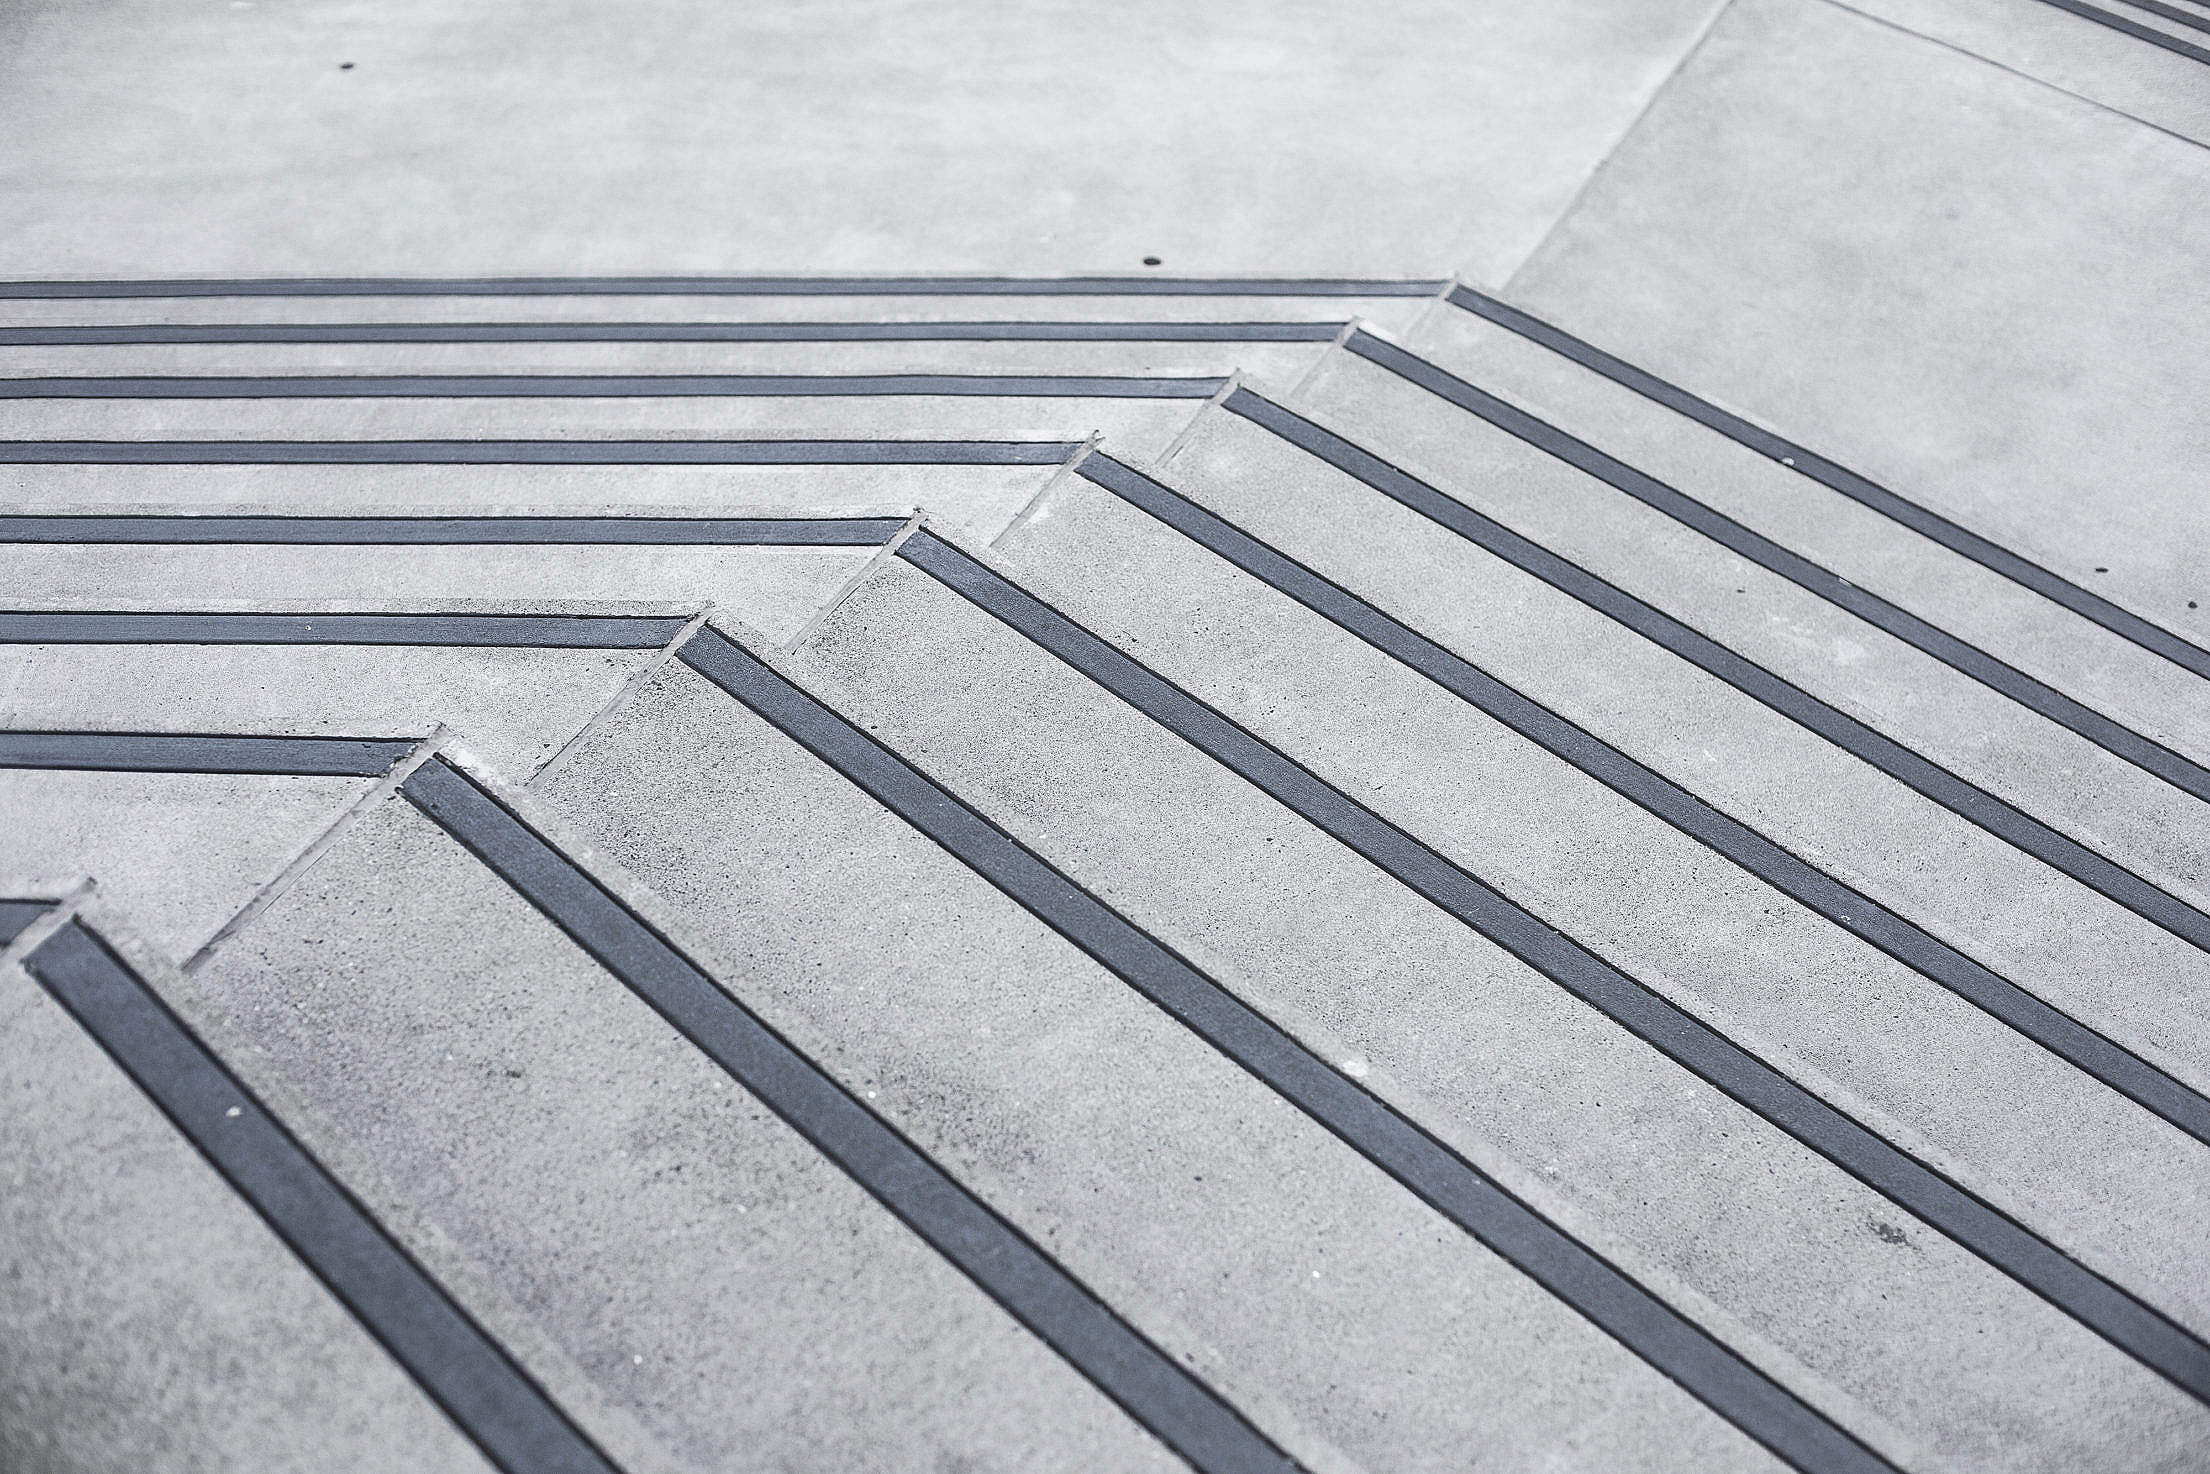 Clean Minimalistic Concrete Stairs #2 Free Stock Photo